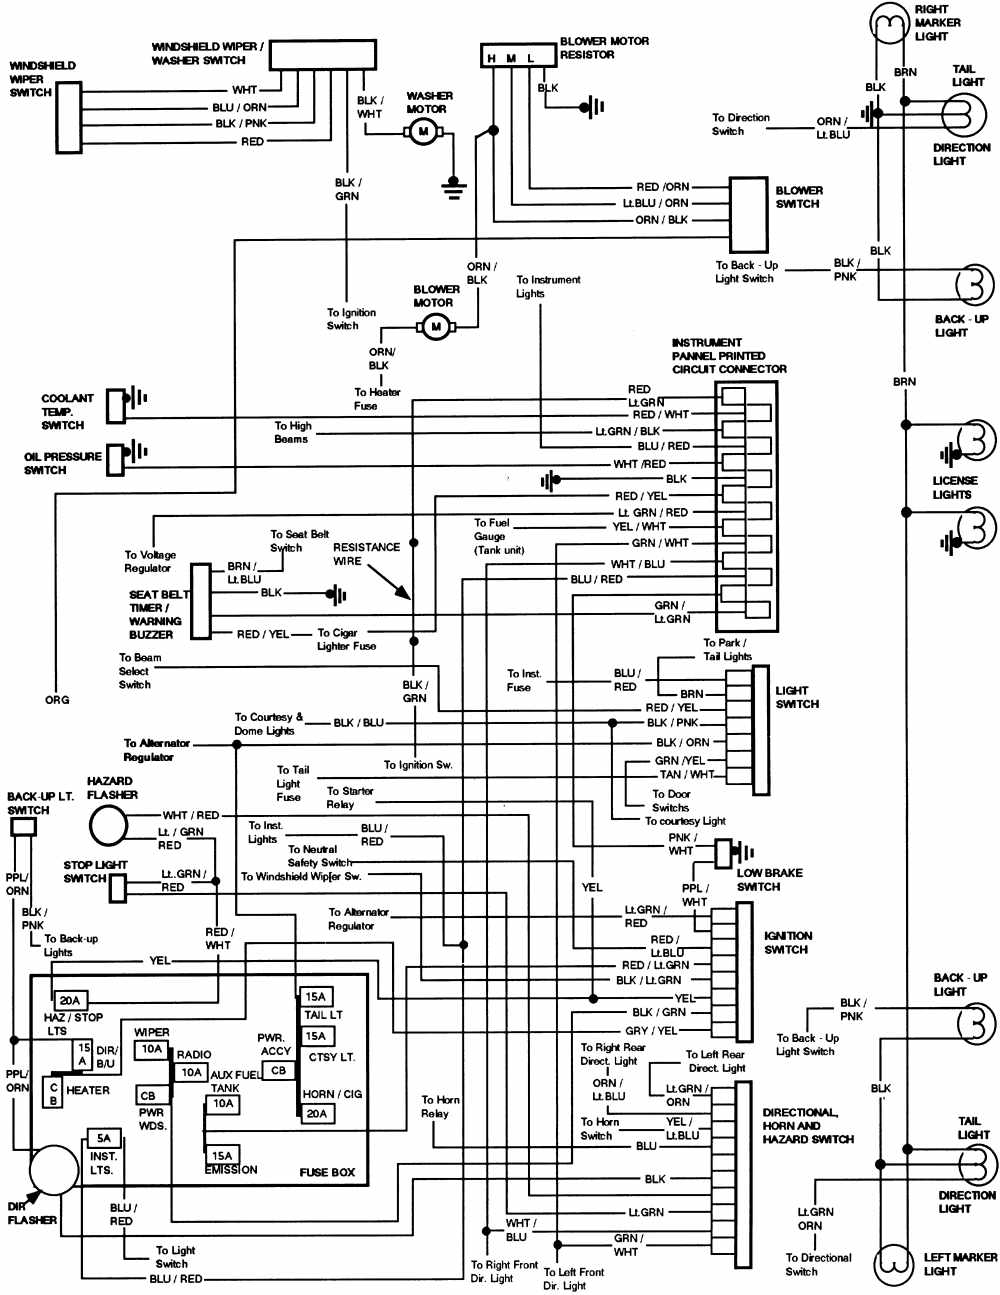 Ford Bronco Instrument Panel Wiring Diagram on 1995 ford e350 steering column diagram